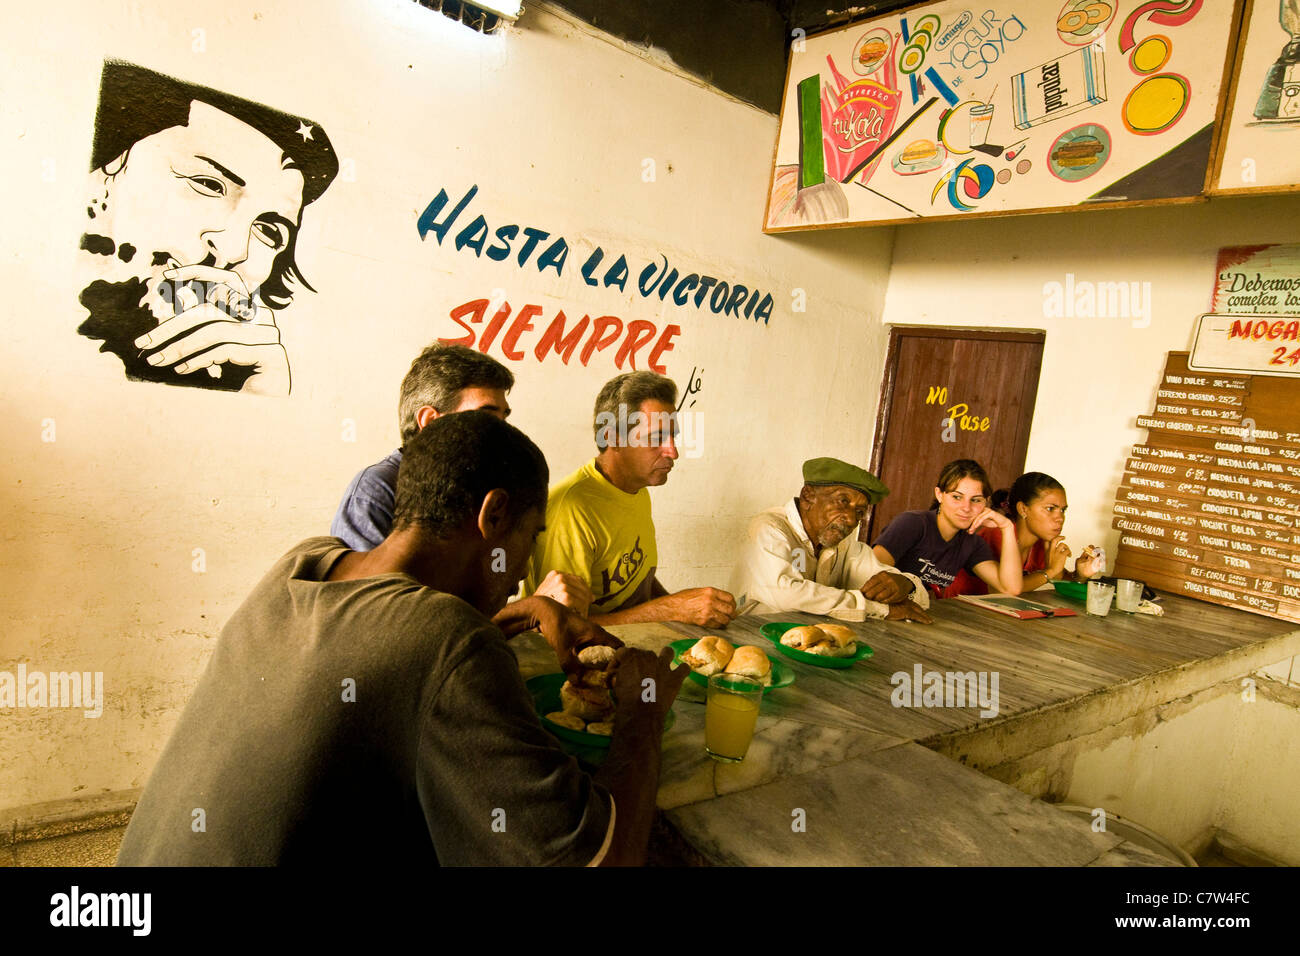 Cuba, Camaguey, people sitting at bar counter - Stock Image